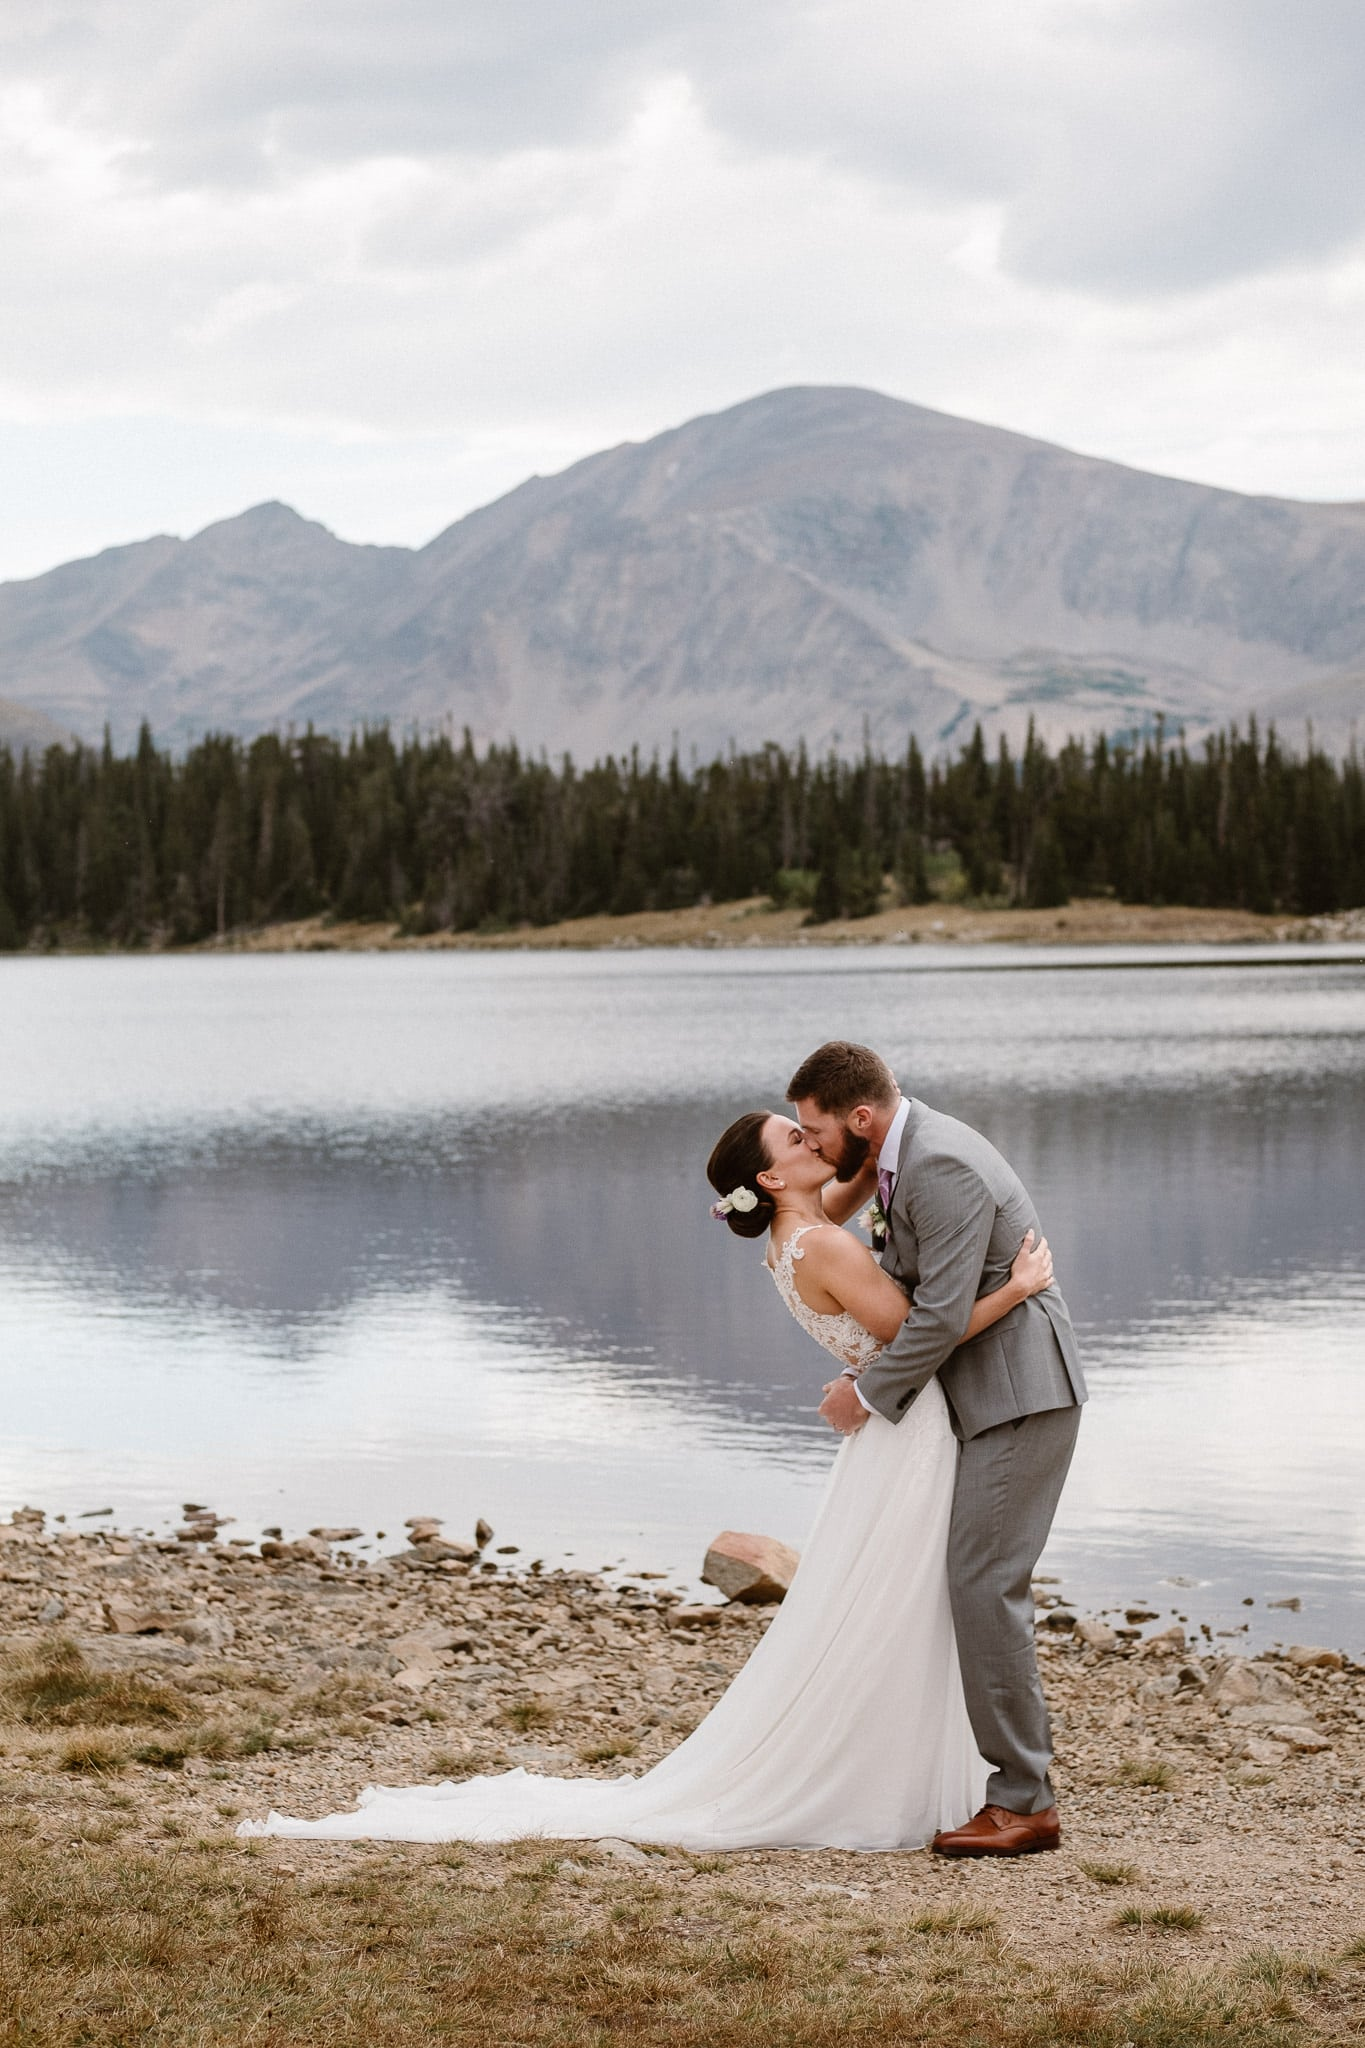 Colorado mountain elopement photographer, alpine lake adventure wedding, Boulder wedding photographer, outdoor ceremony, first kiss